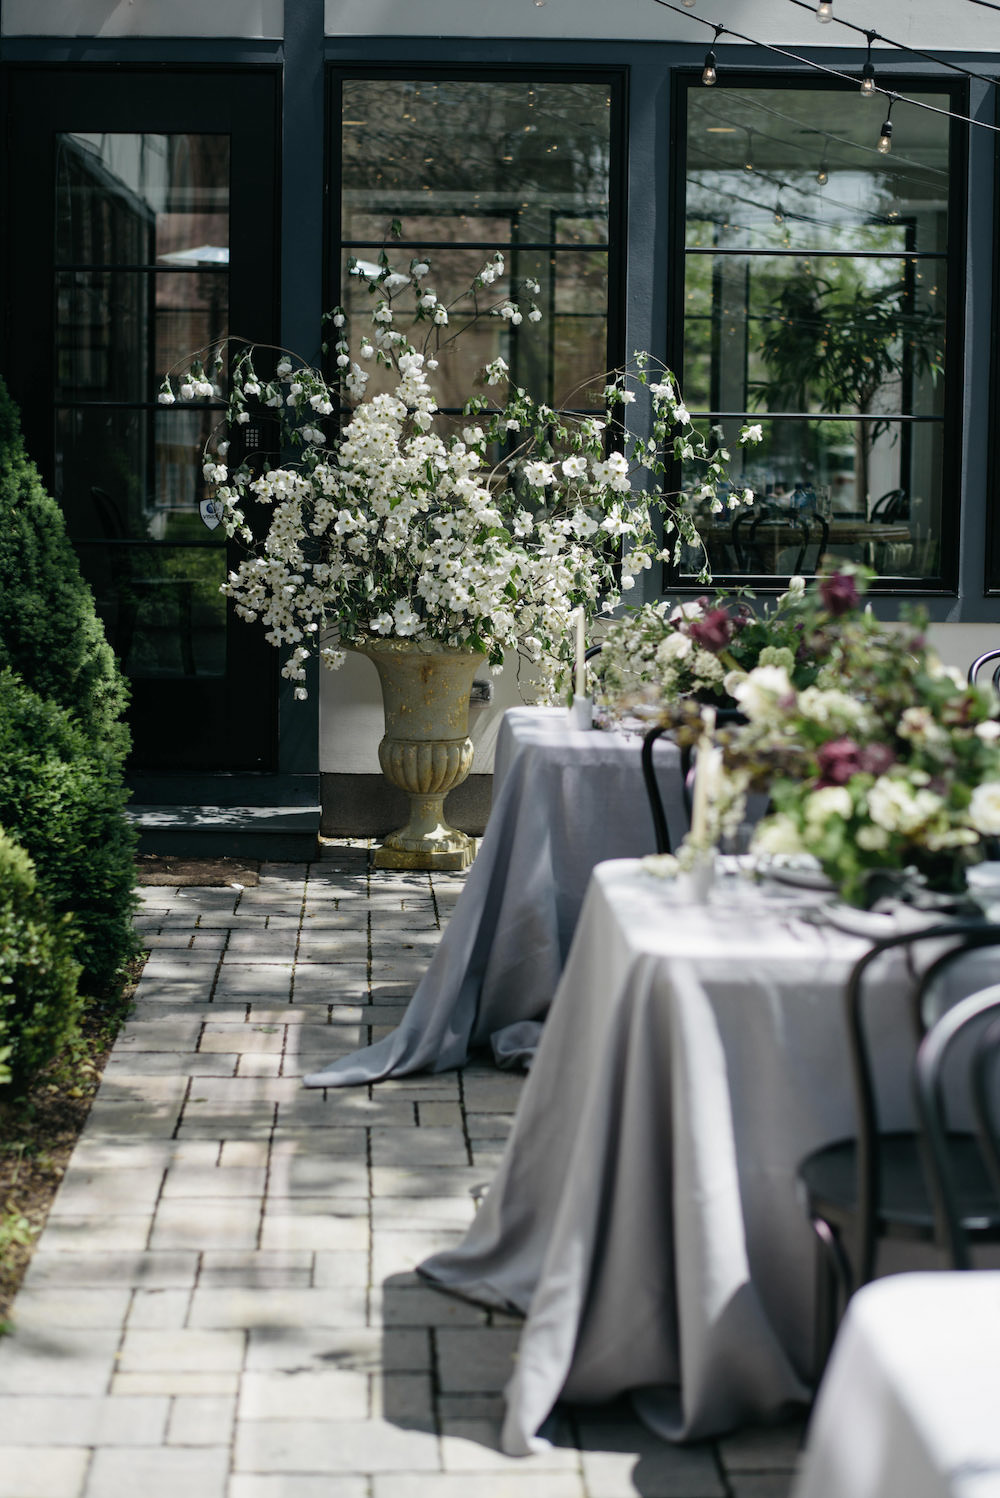 12th-Table-WEDDING-RENTALS-NASHVILLE-Lounge-Chairs-for-Rent-ENTERTAINING-party-rentals-event-rentals-Germantown-Inn-50.jpg